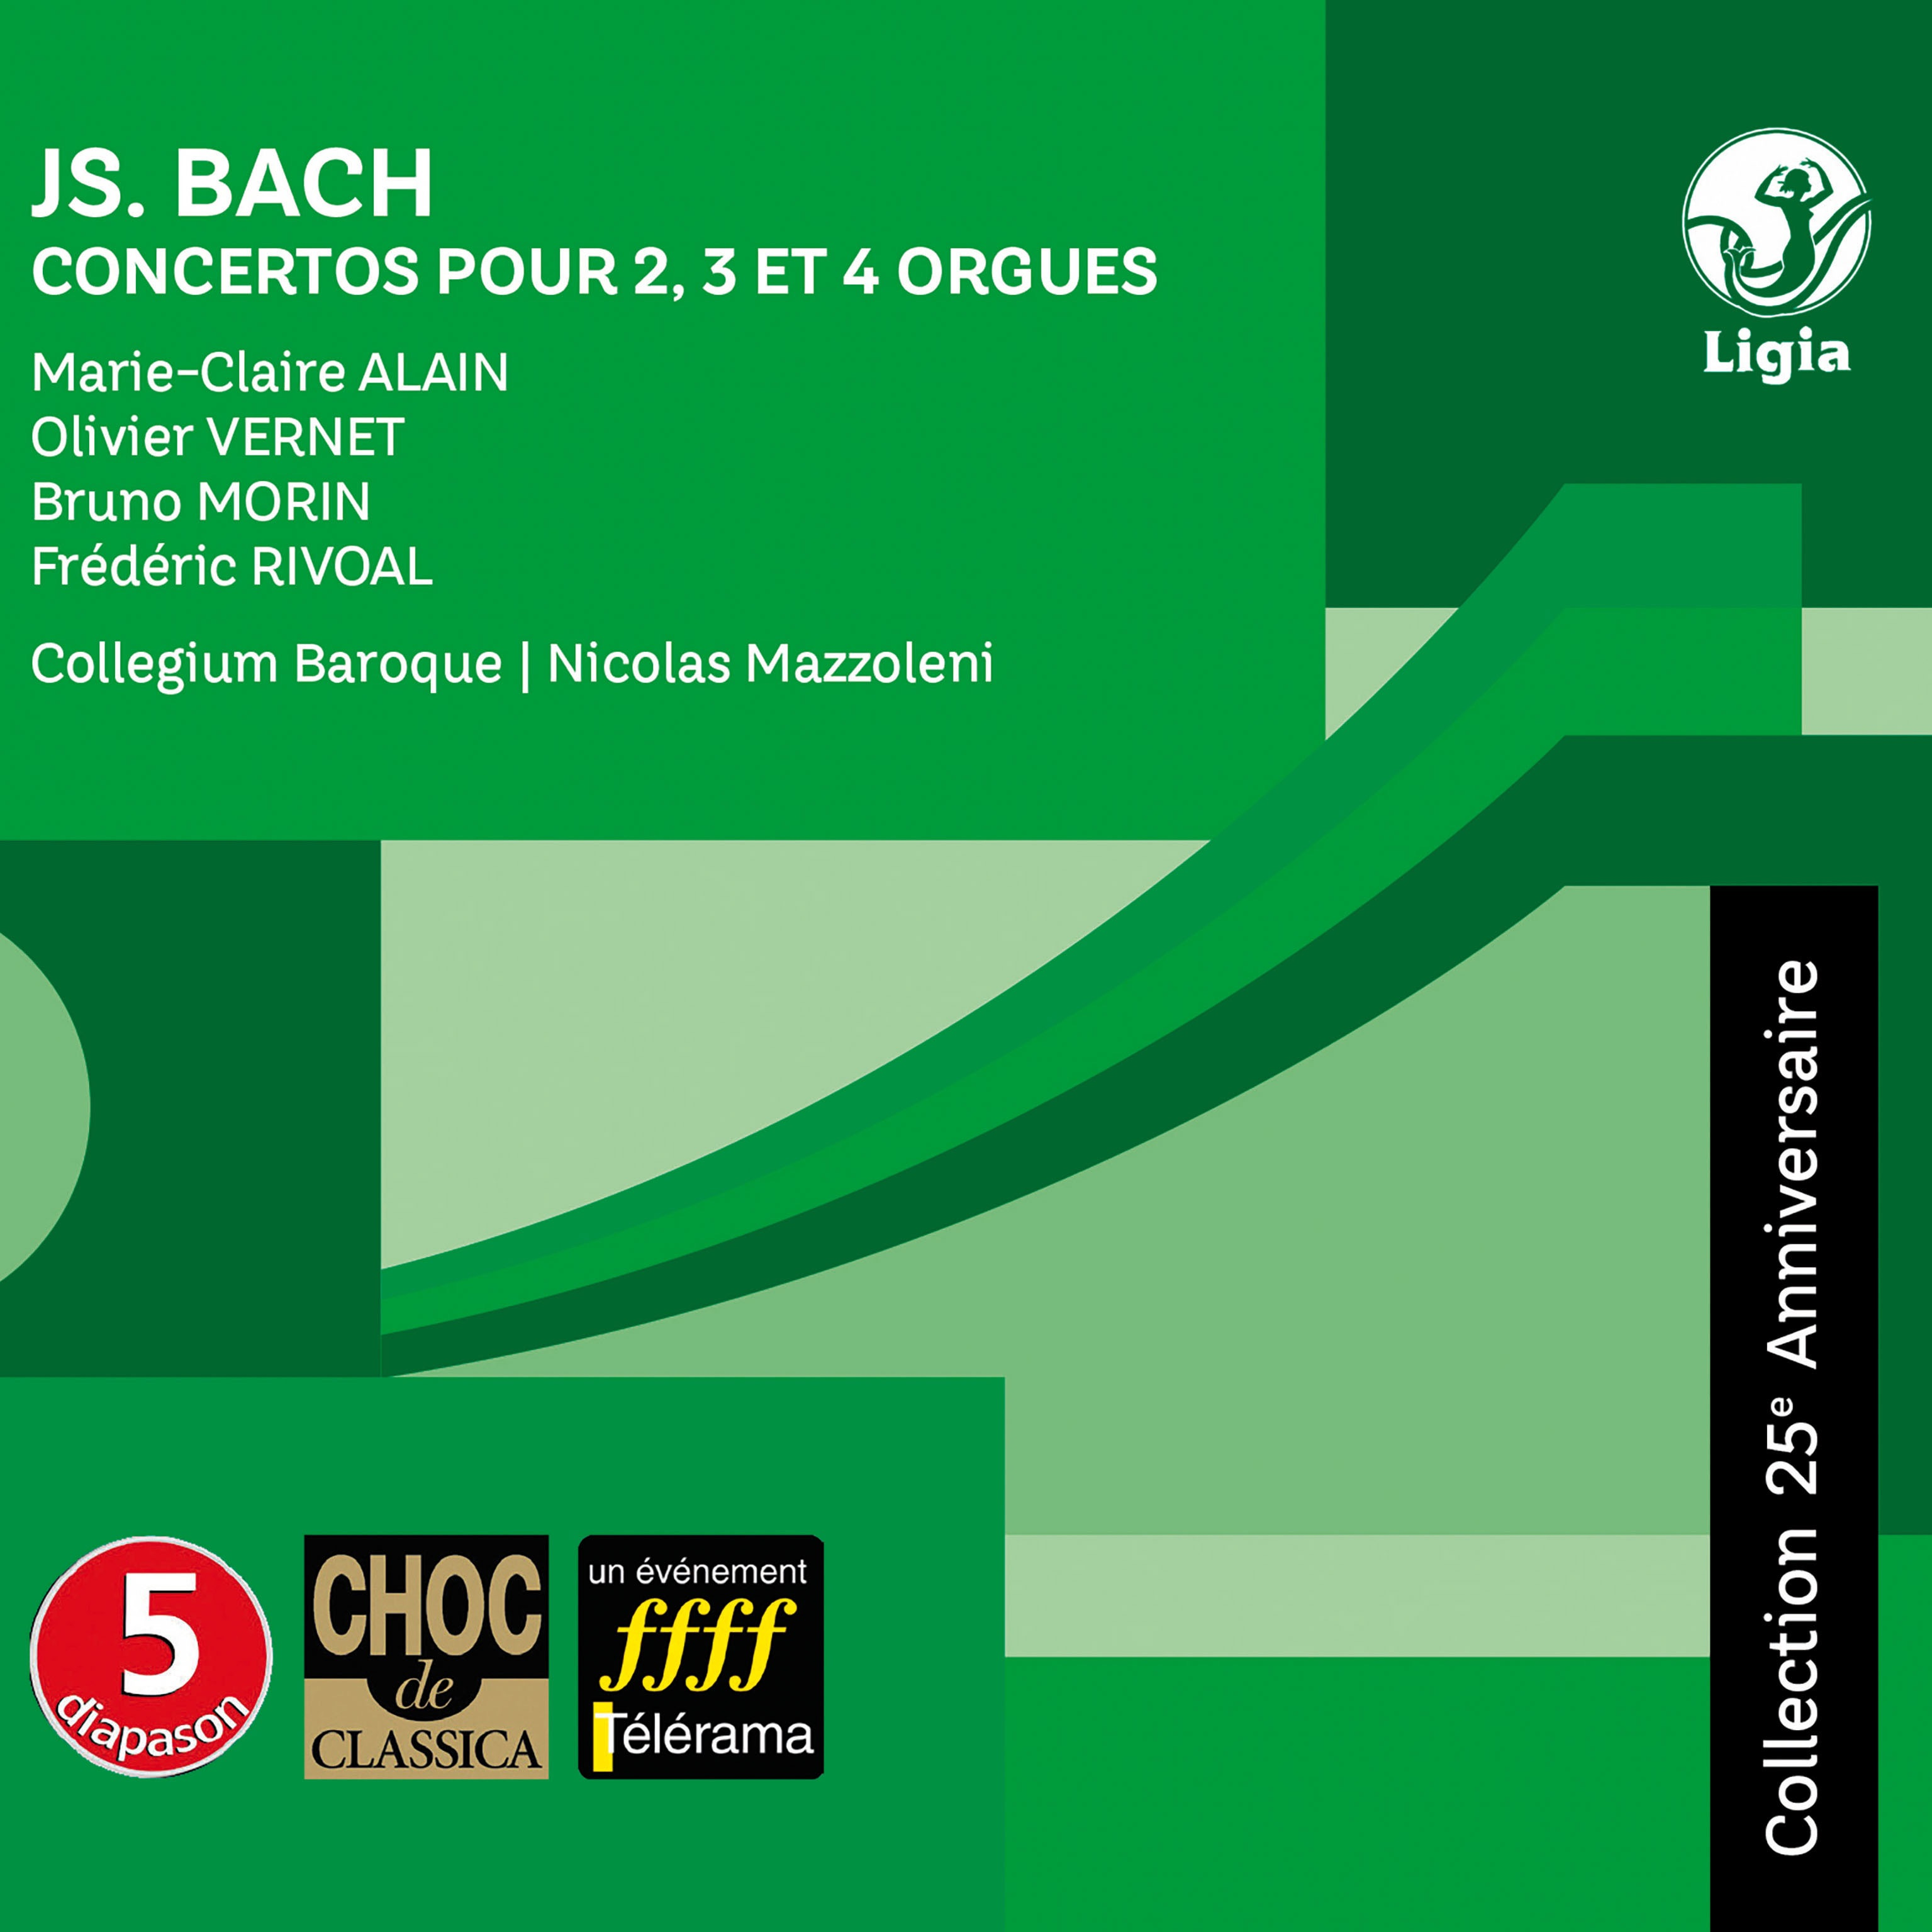 Bach: Concertos for 2, 3 and 4 Organs, BWV 1060, 1061, 1062, 1604 & 1605 (Collection 25e anniversaire)